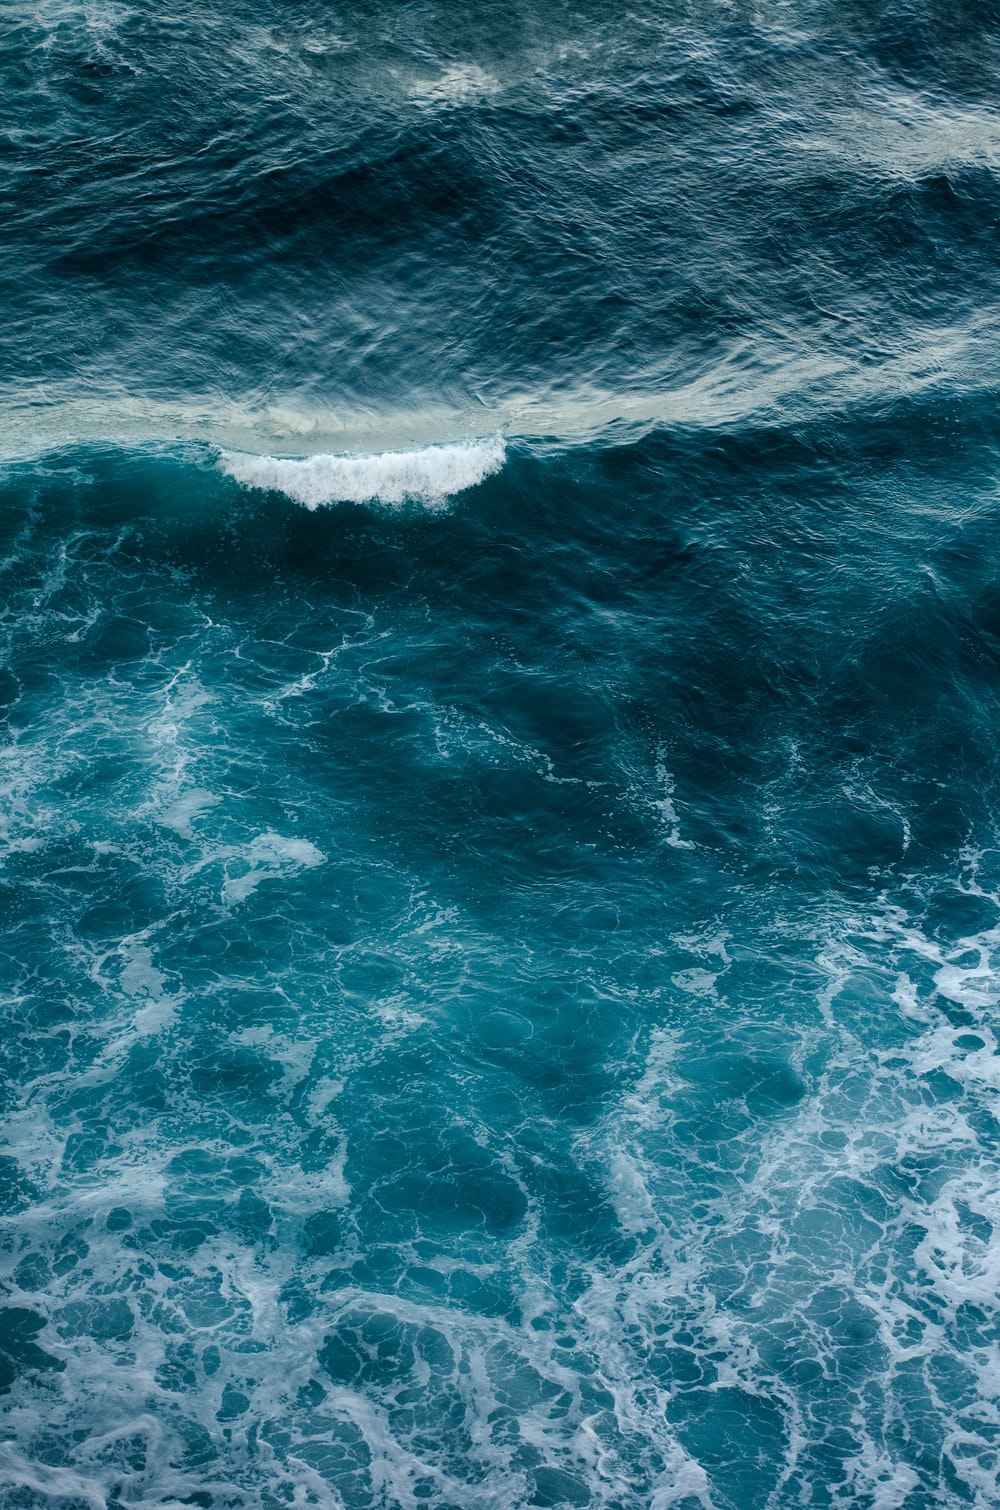 waves of sea water during daytime